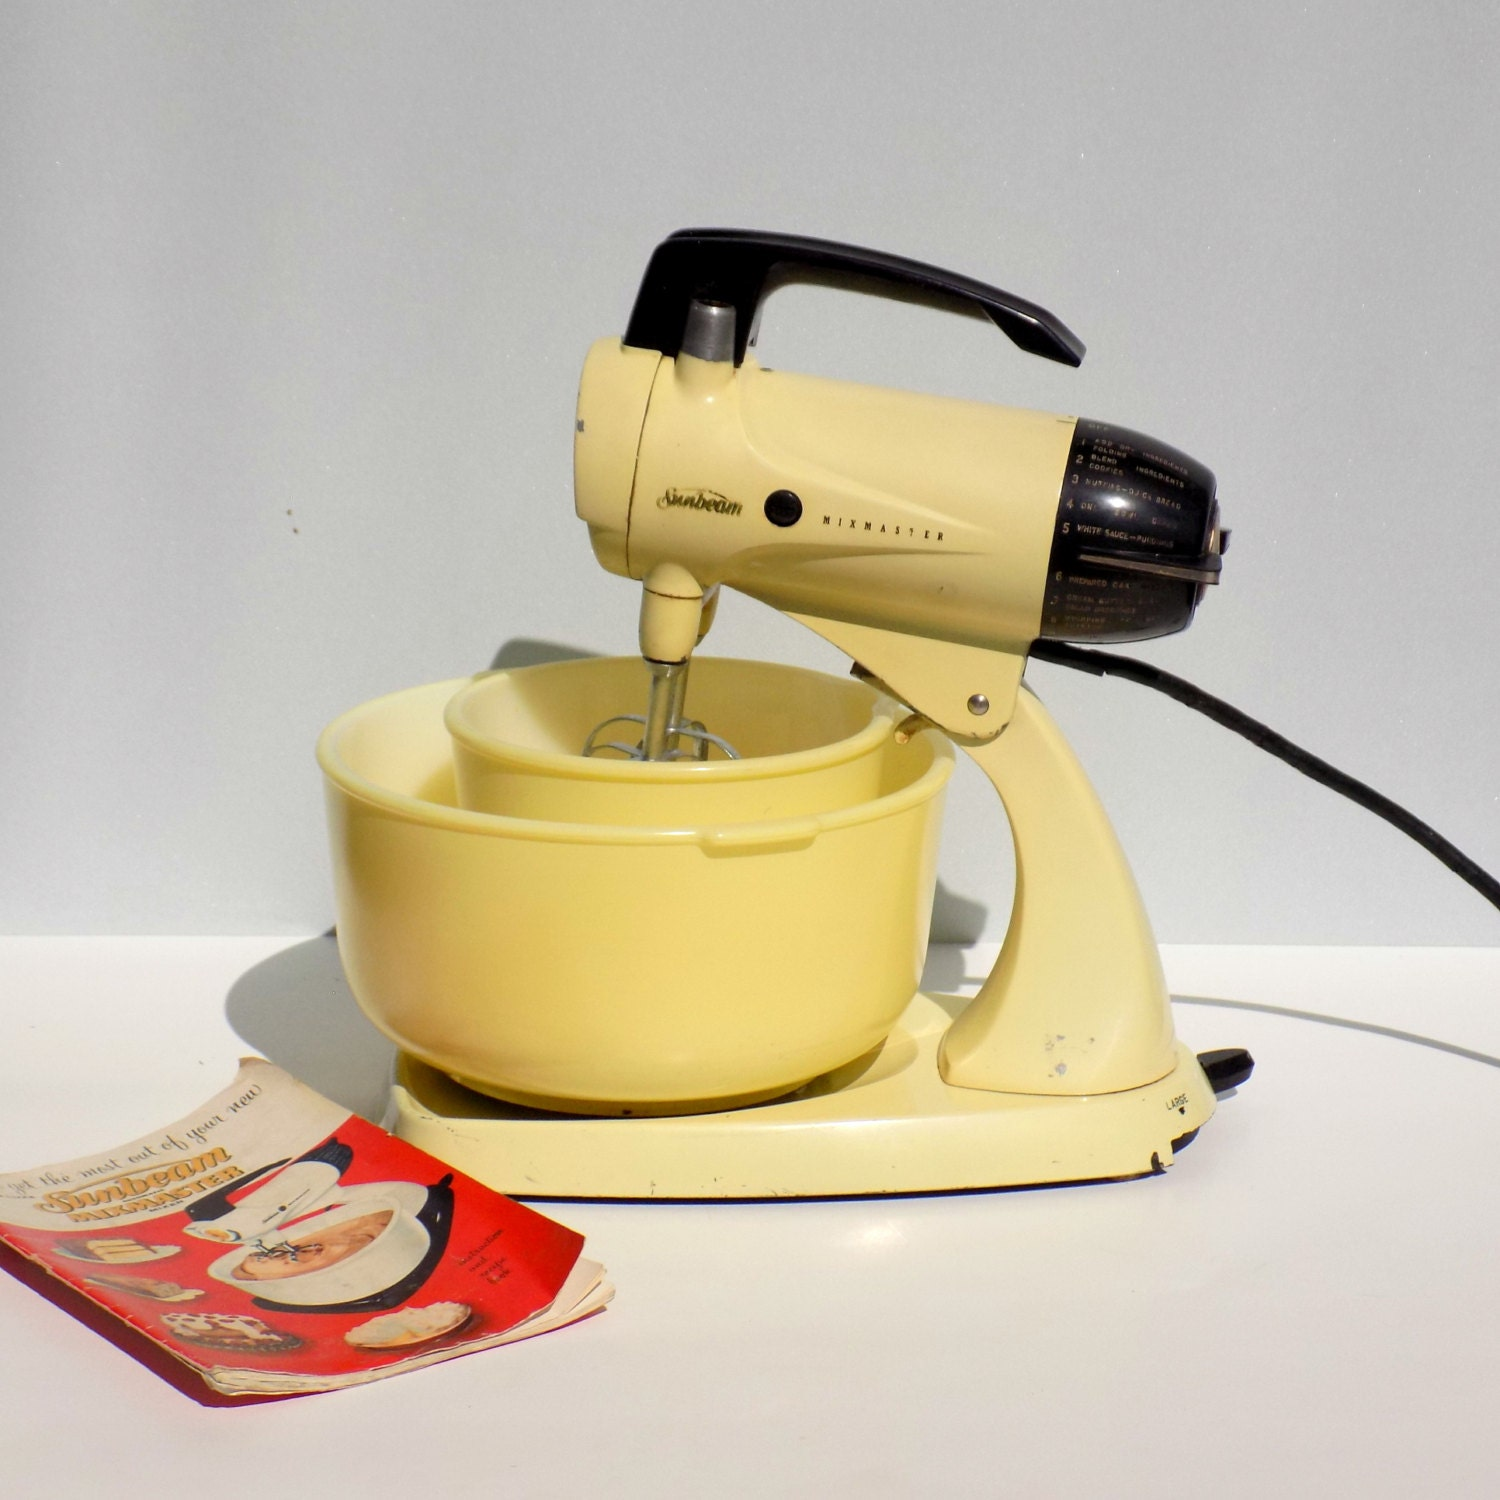 Sunbeam Electric Stand Mixer ~ Vintage s sunbeam mixmaster electric stand mixer in